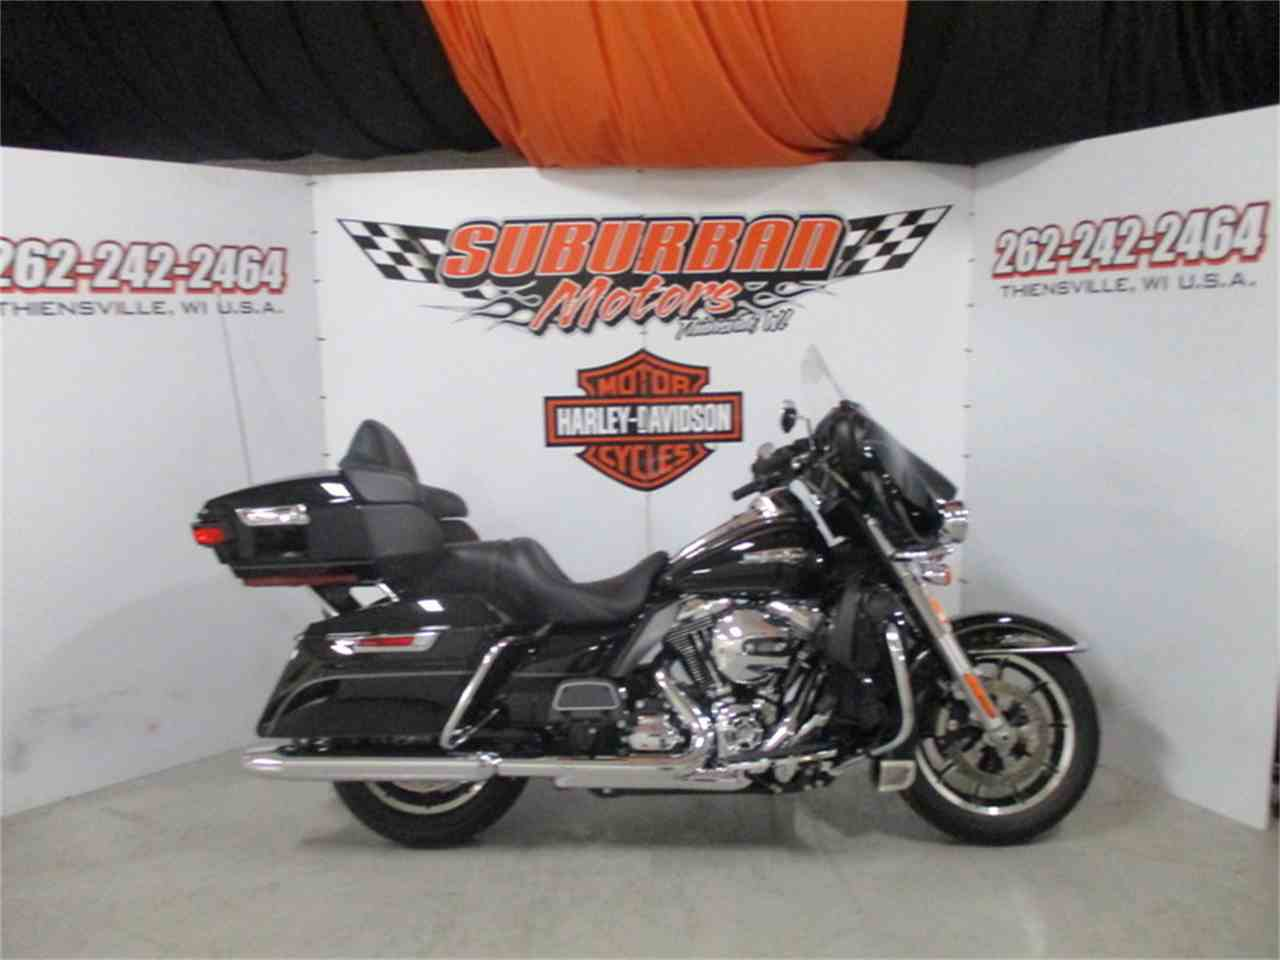 Large Picture of '16 FLHTCU - Electra Glide® Ultra Classic® - M9DY